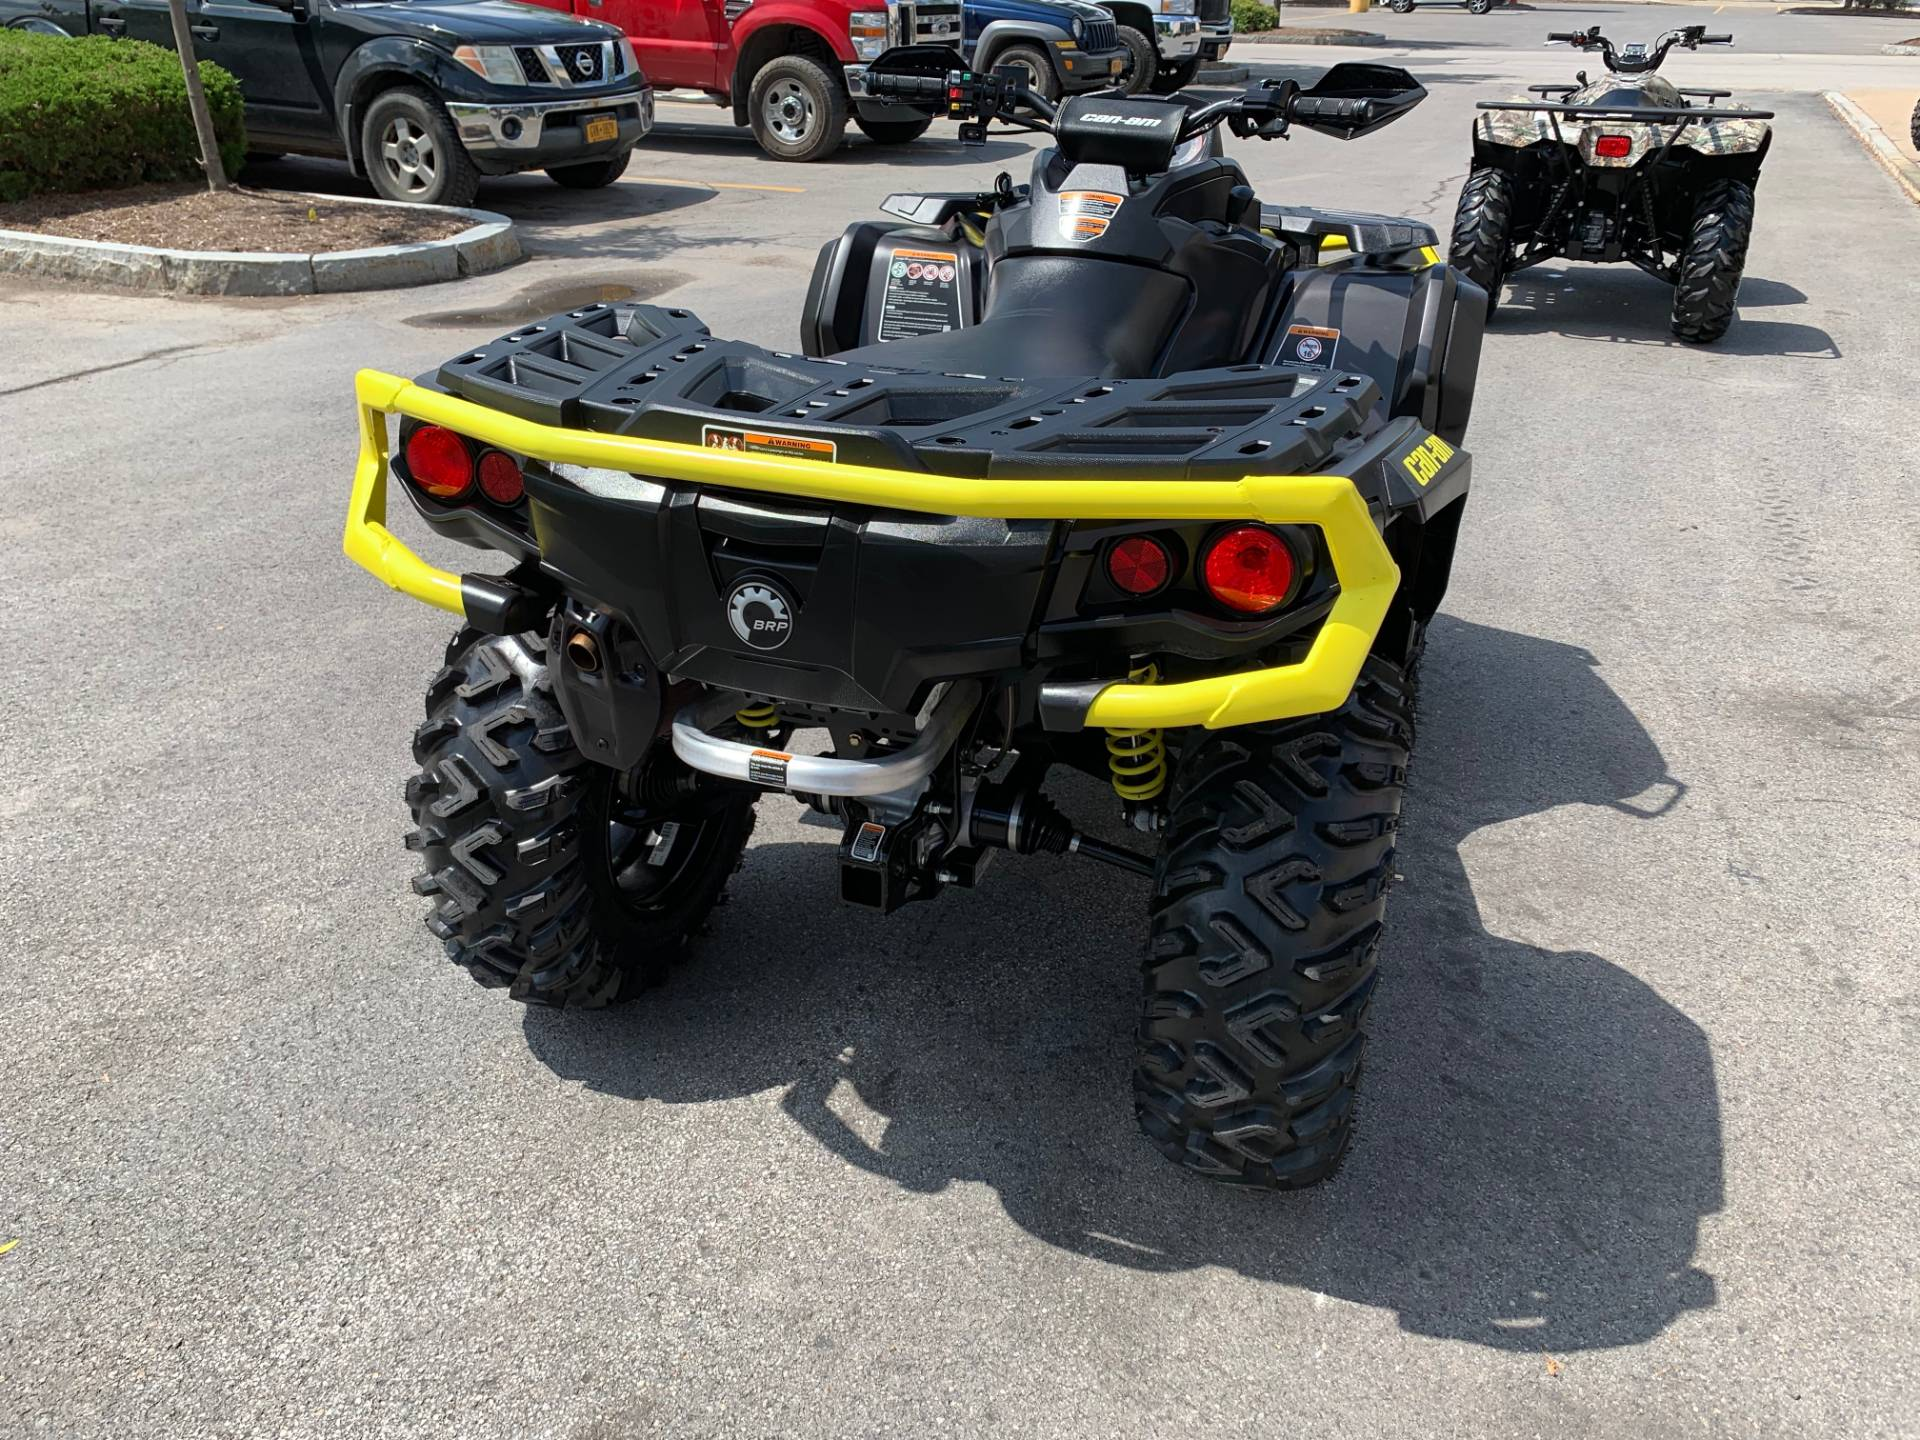 2019 Can-Am Outlander XT-P 850 in Herkimer, New York - Photo 13